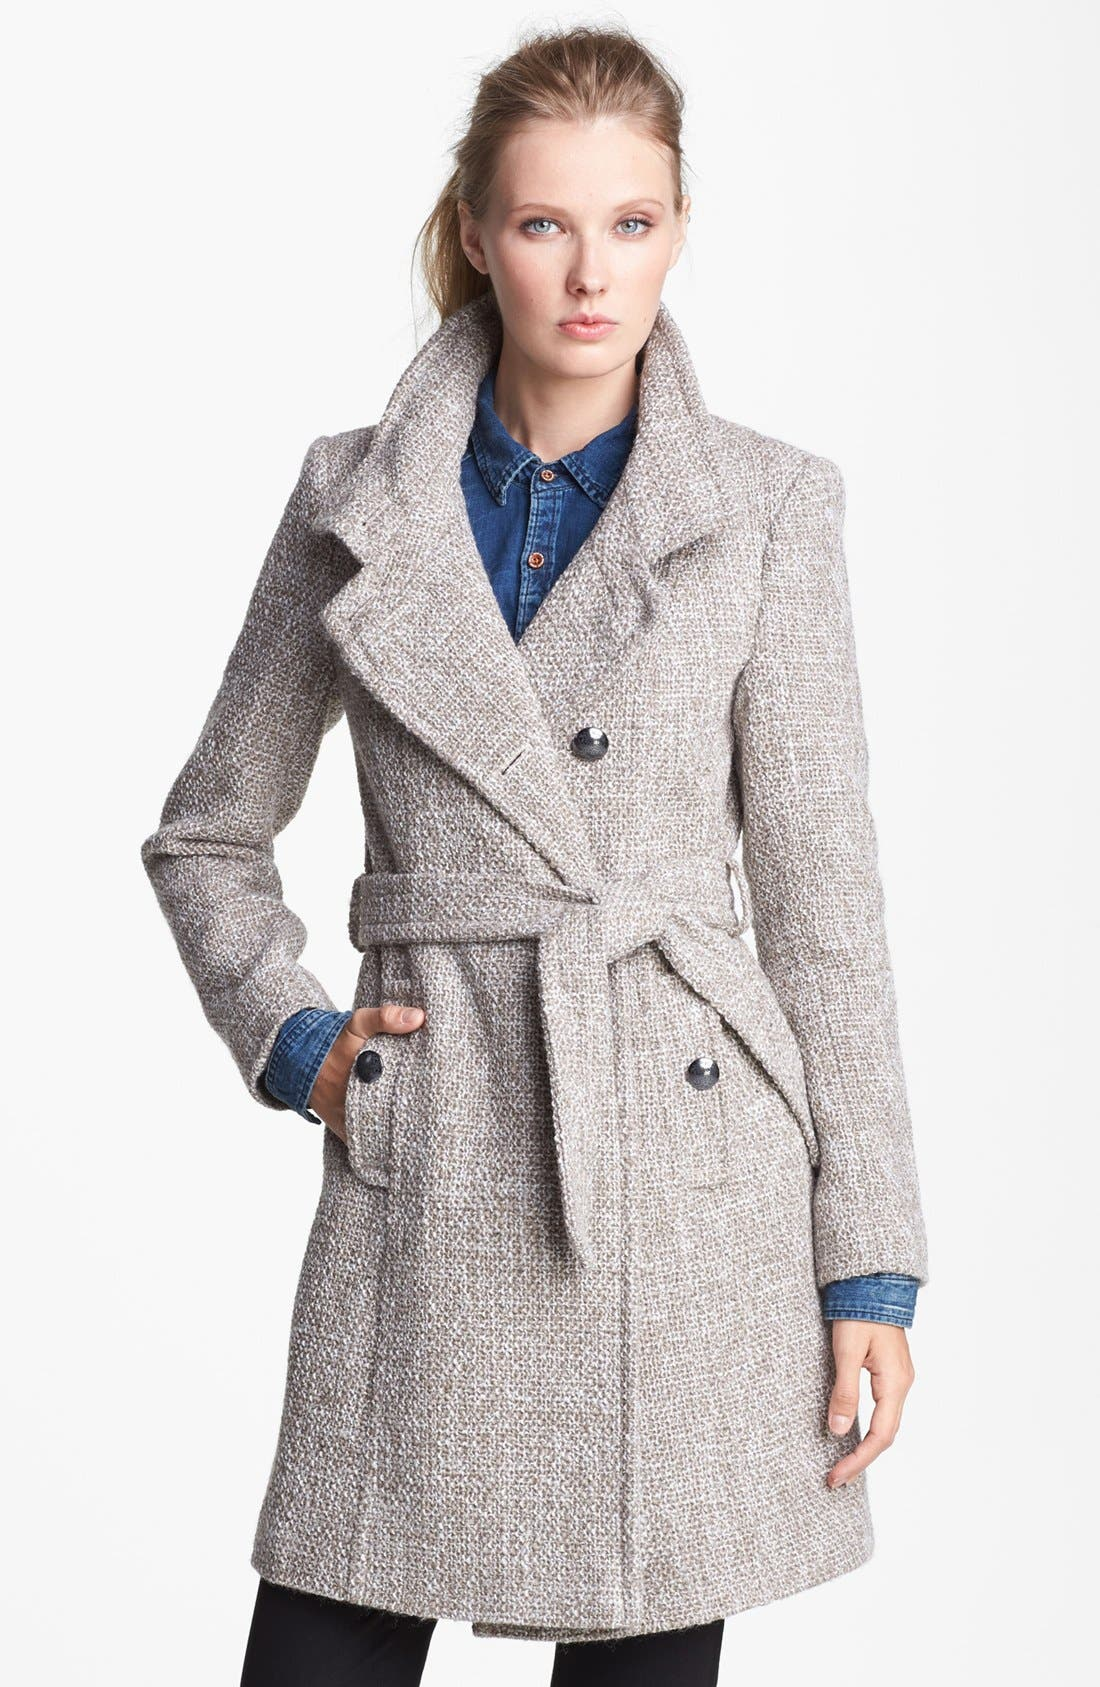 Alternate Image 1 Selected - T Tahari 'Izzy' Belted Tweed Coat (Online Only)